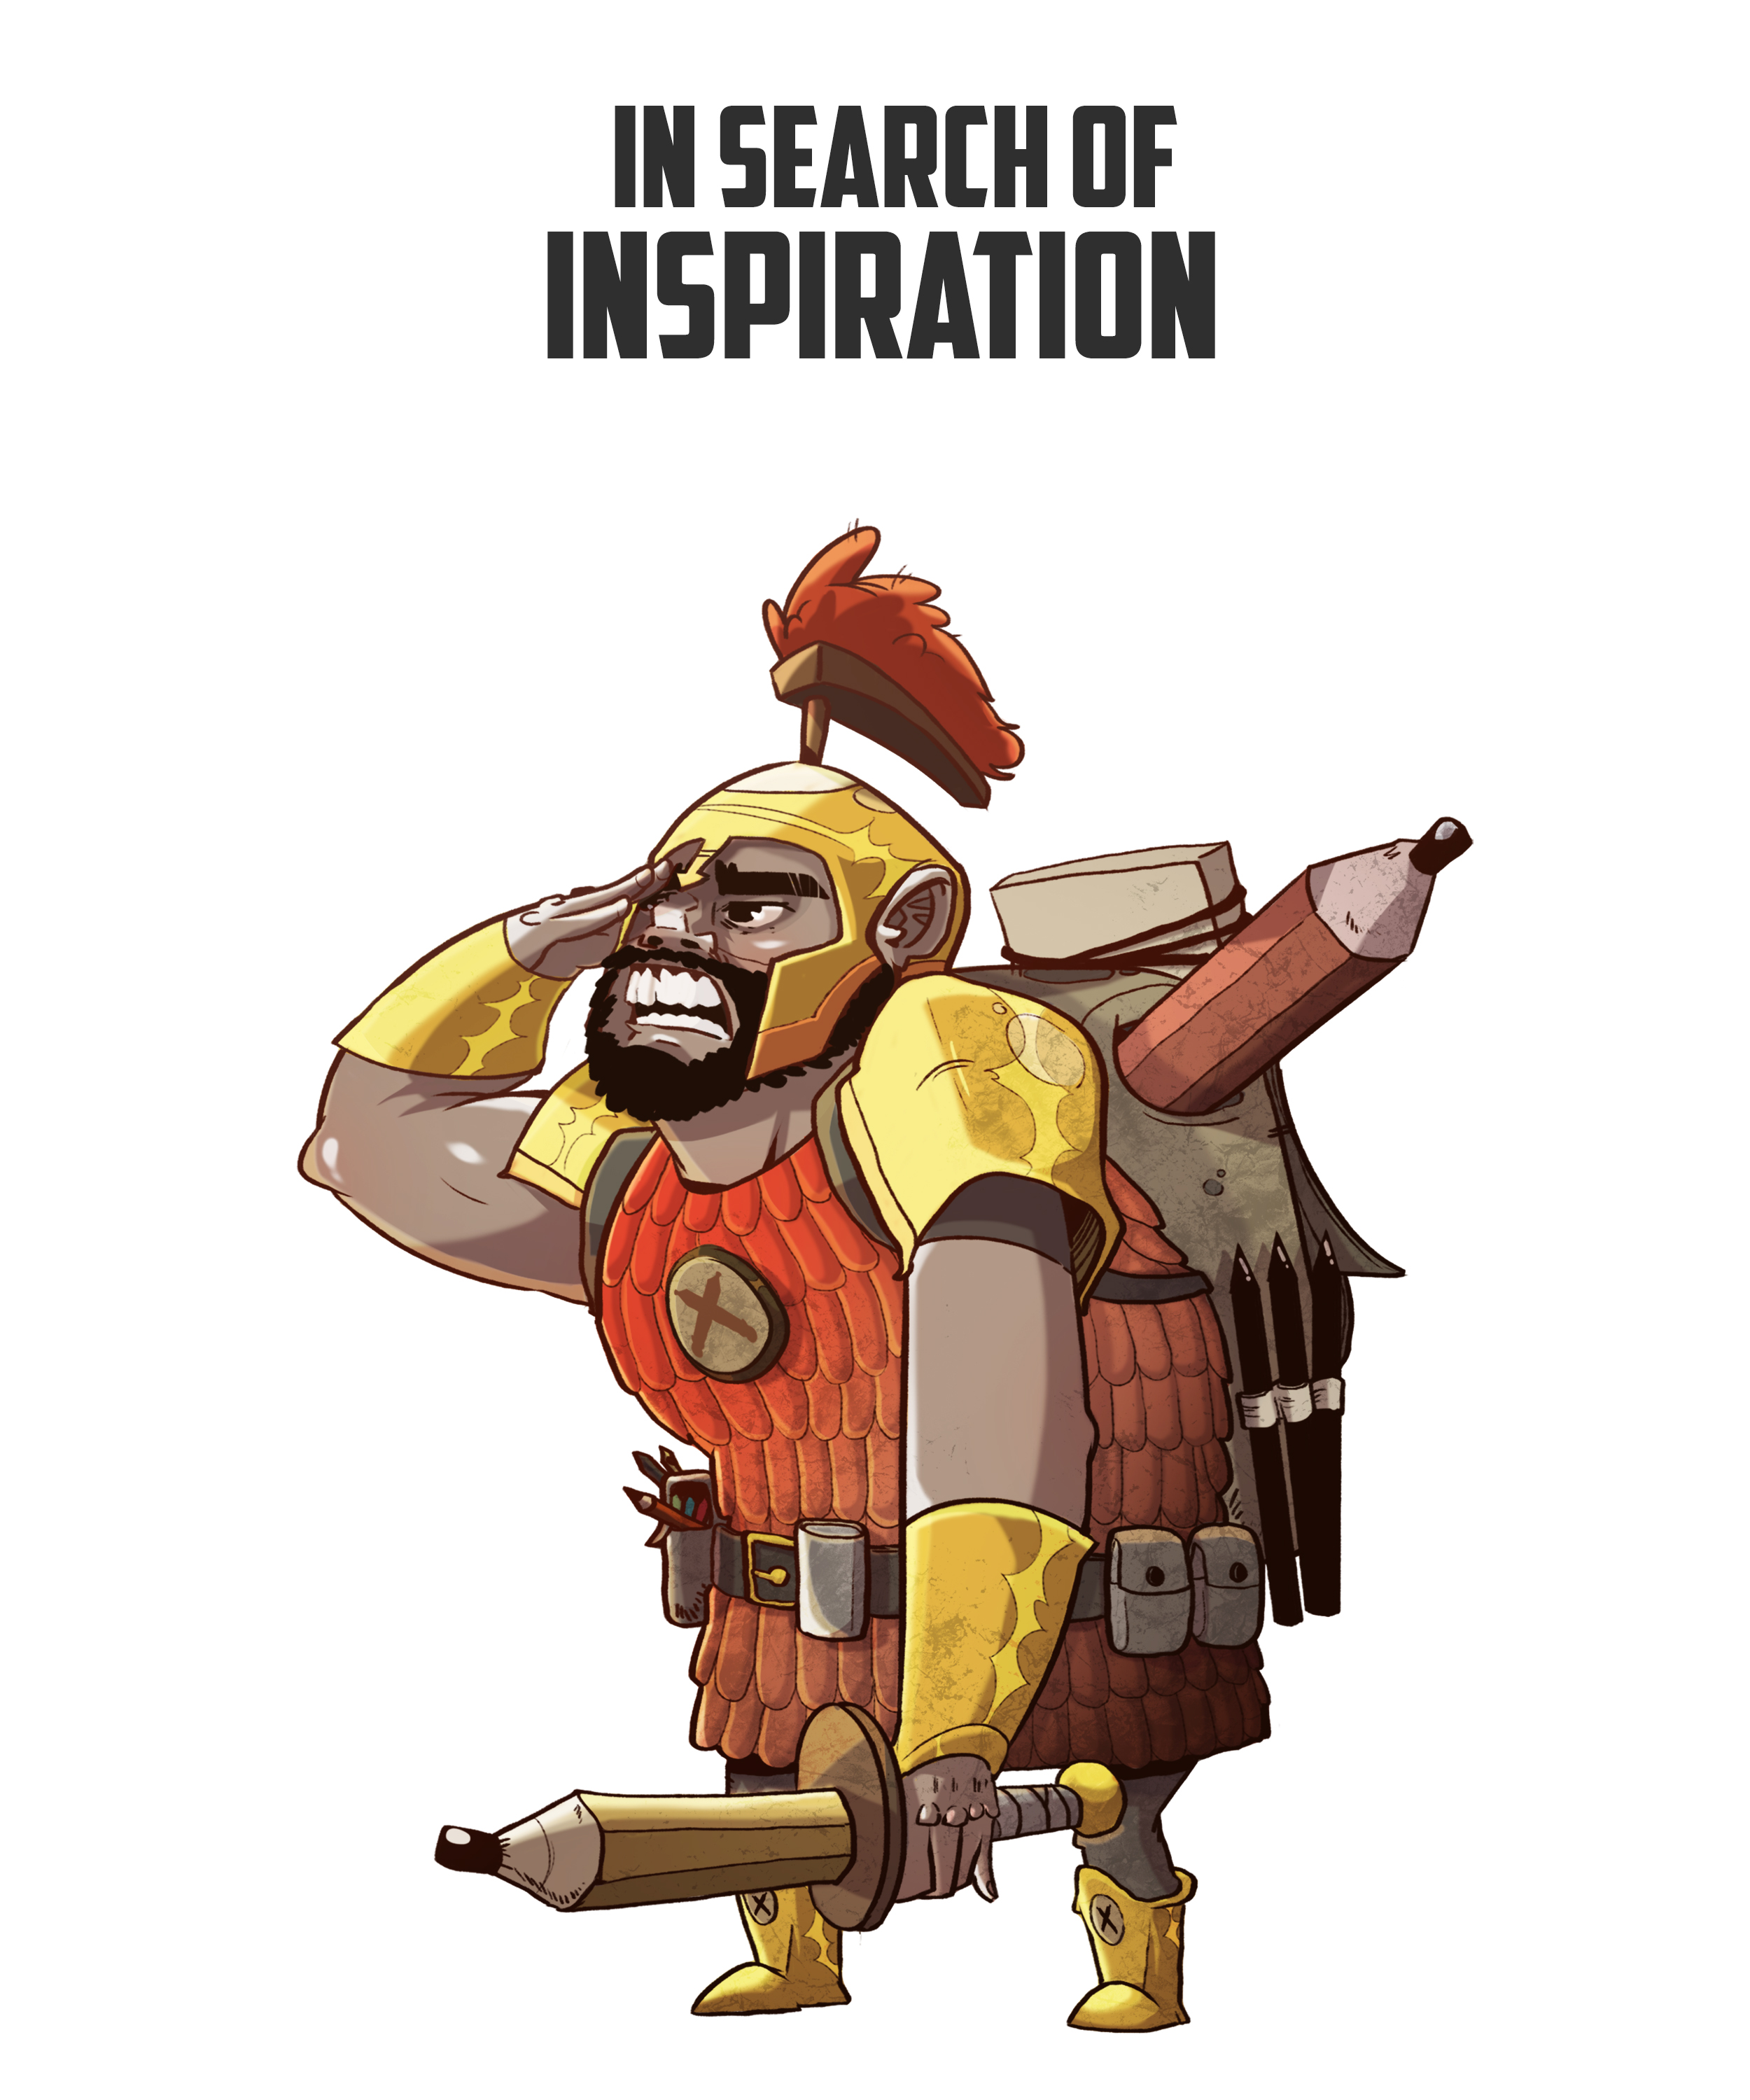 In search of INSPIRATION!